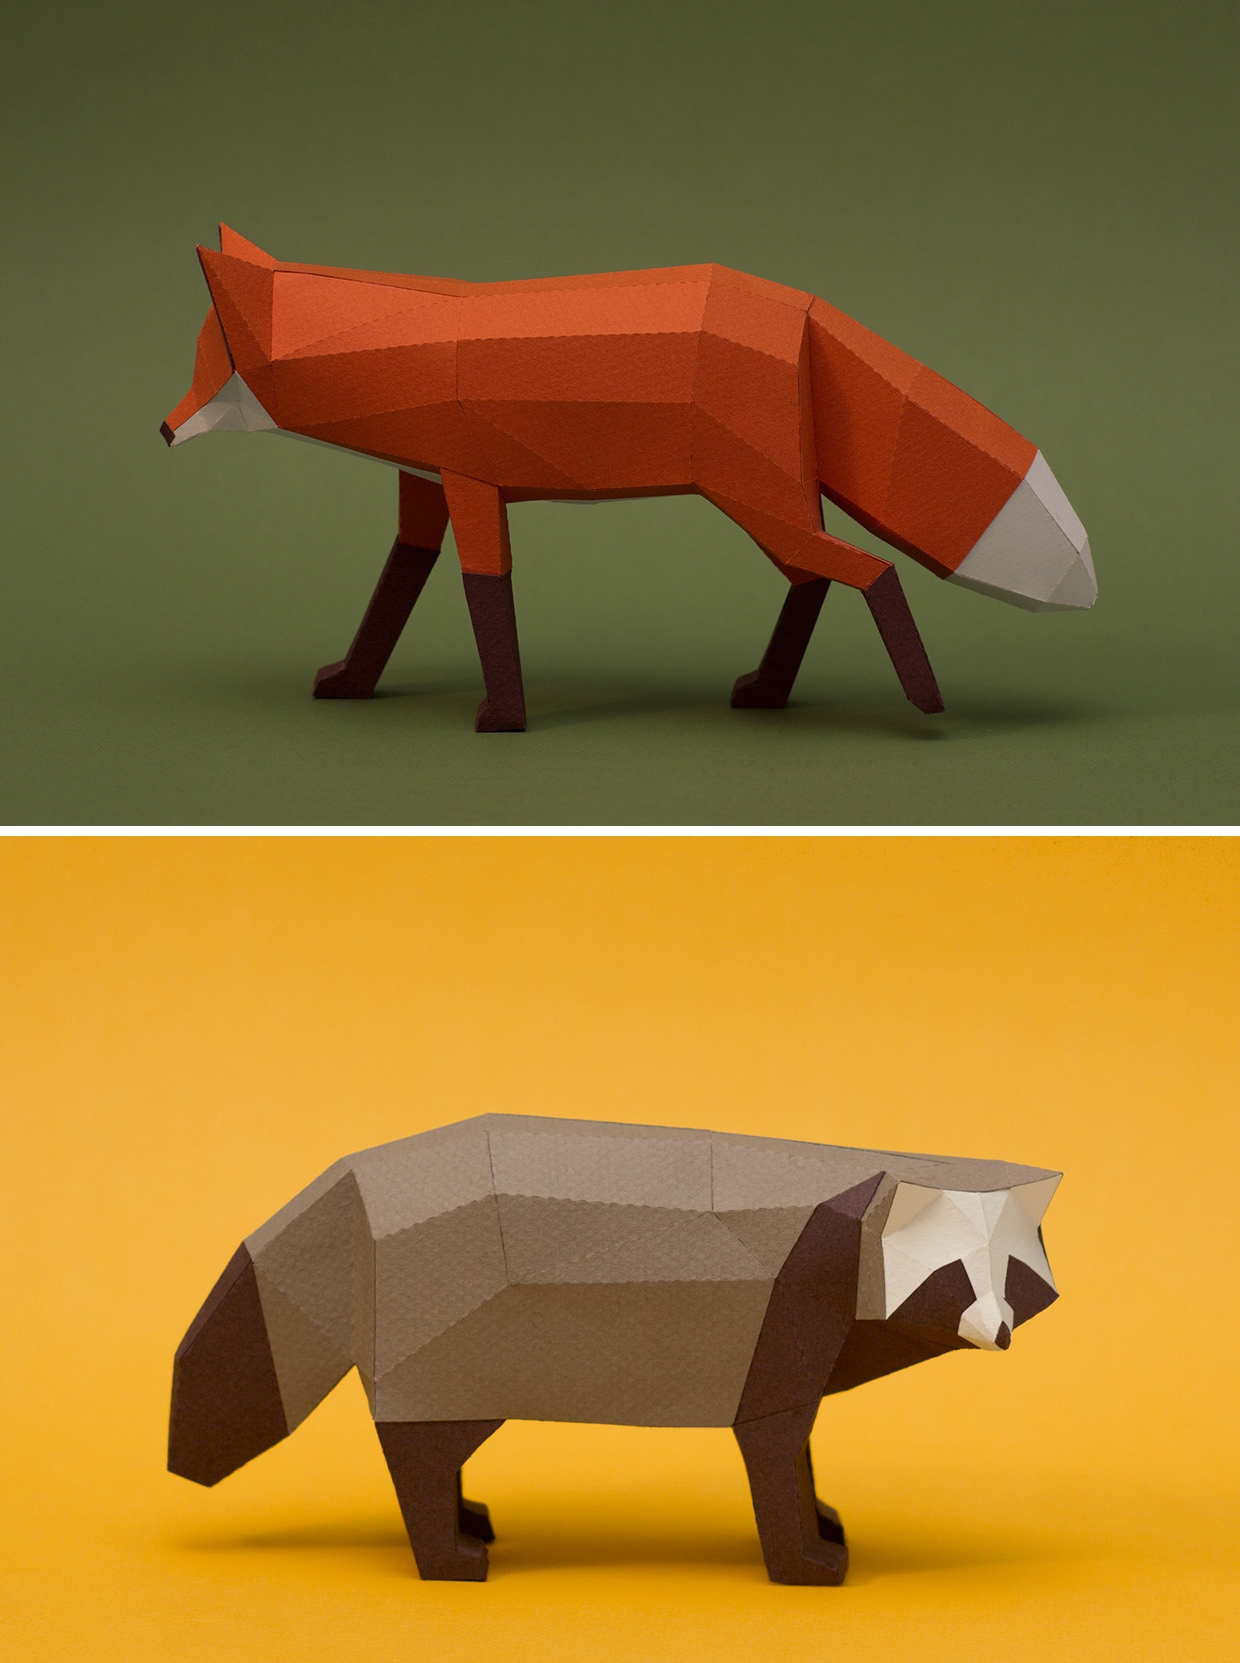 Extrem 10 low-poly illustrations that'll inspire you to create your own  TS29